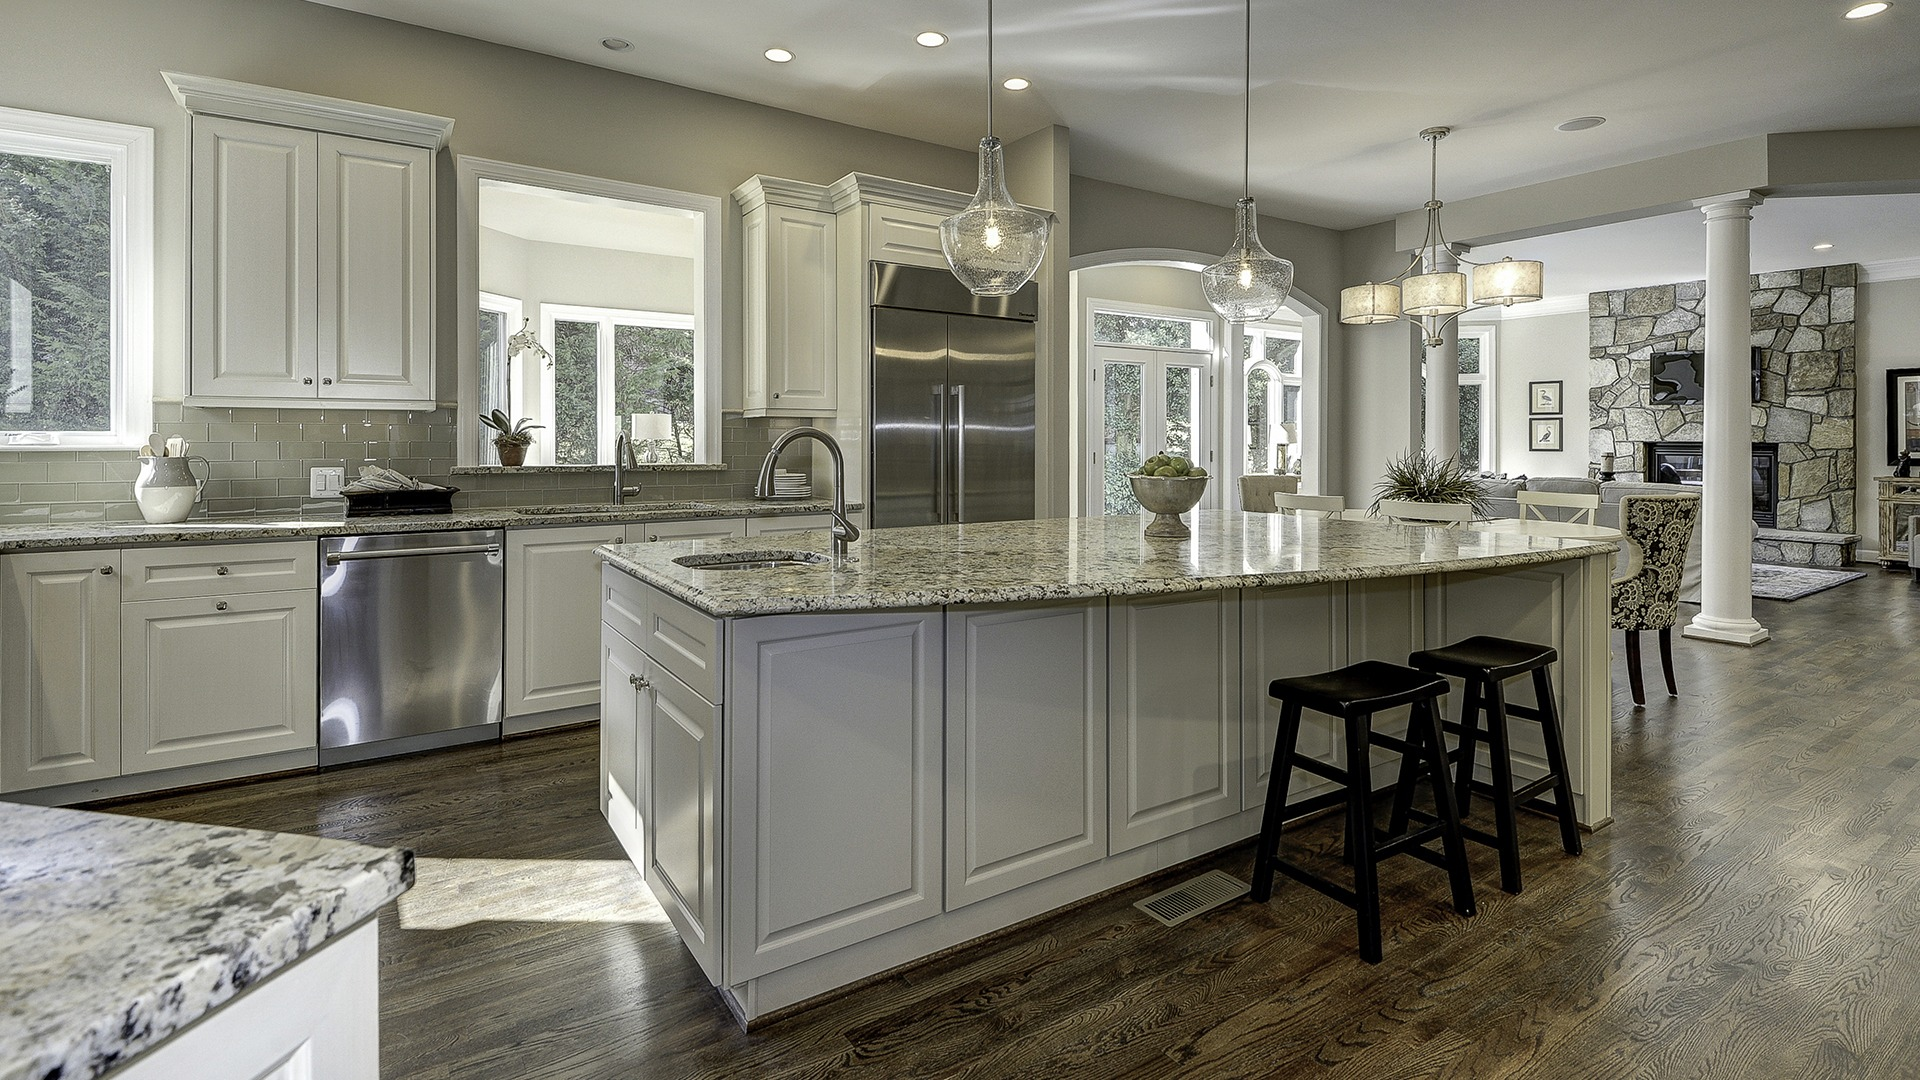 The Kitchen in Carper Street, a Gulick | One custom home.